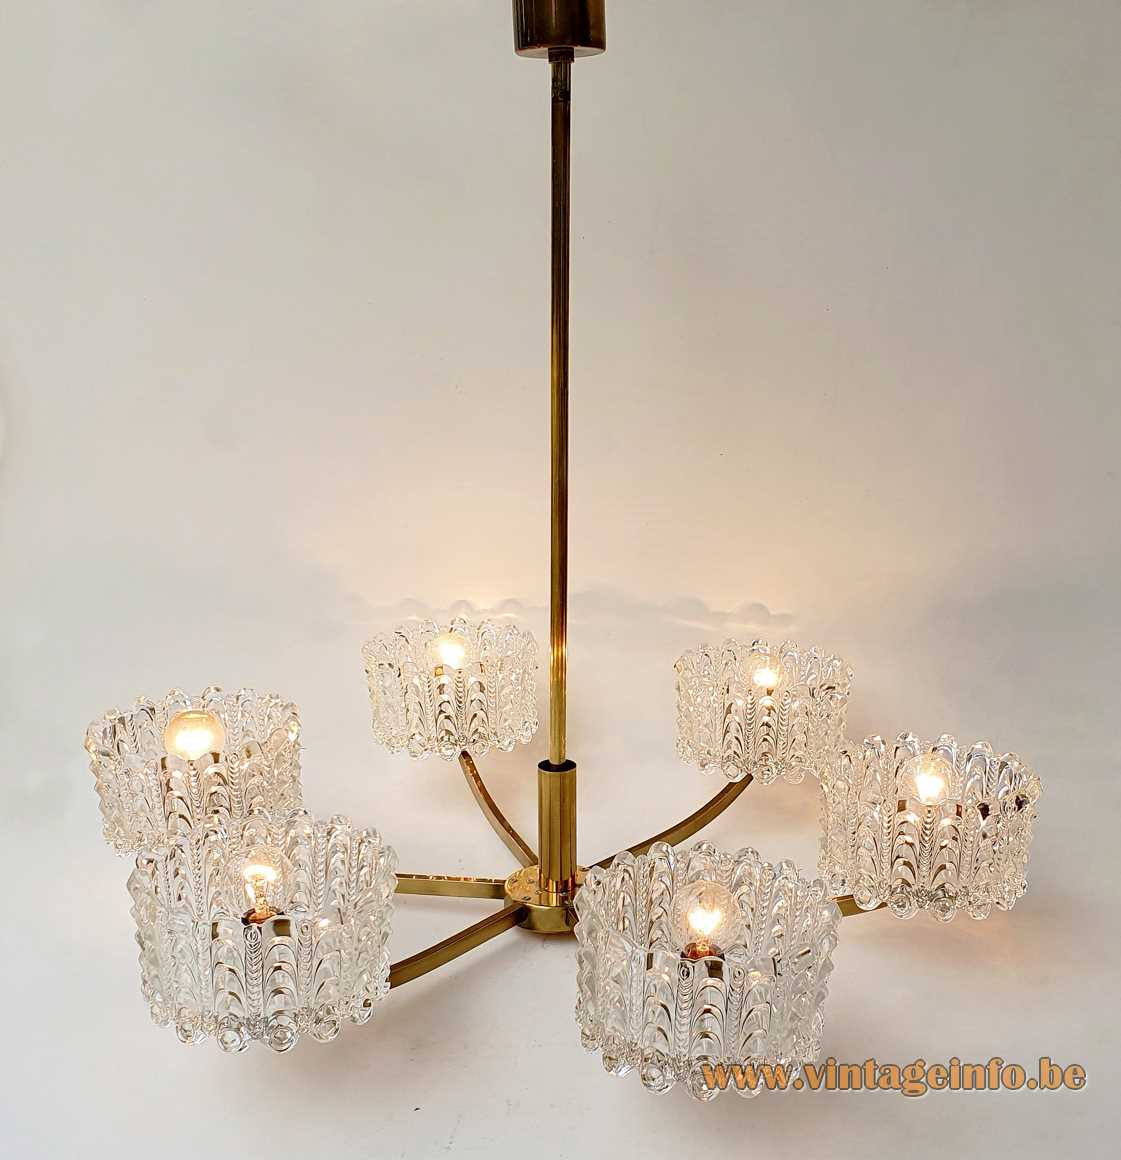 DORIA crystal glass bowls chandelier 6 chalices brass rods 1960s 1970s E27 sockets Mid-Century Modern MCM Germany